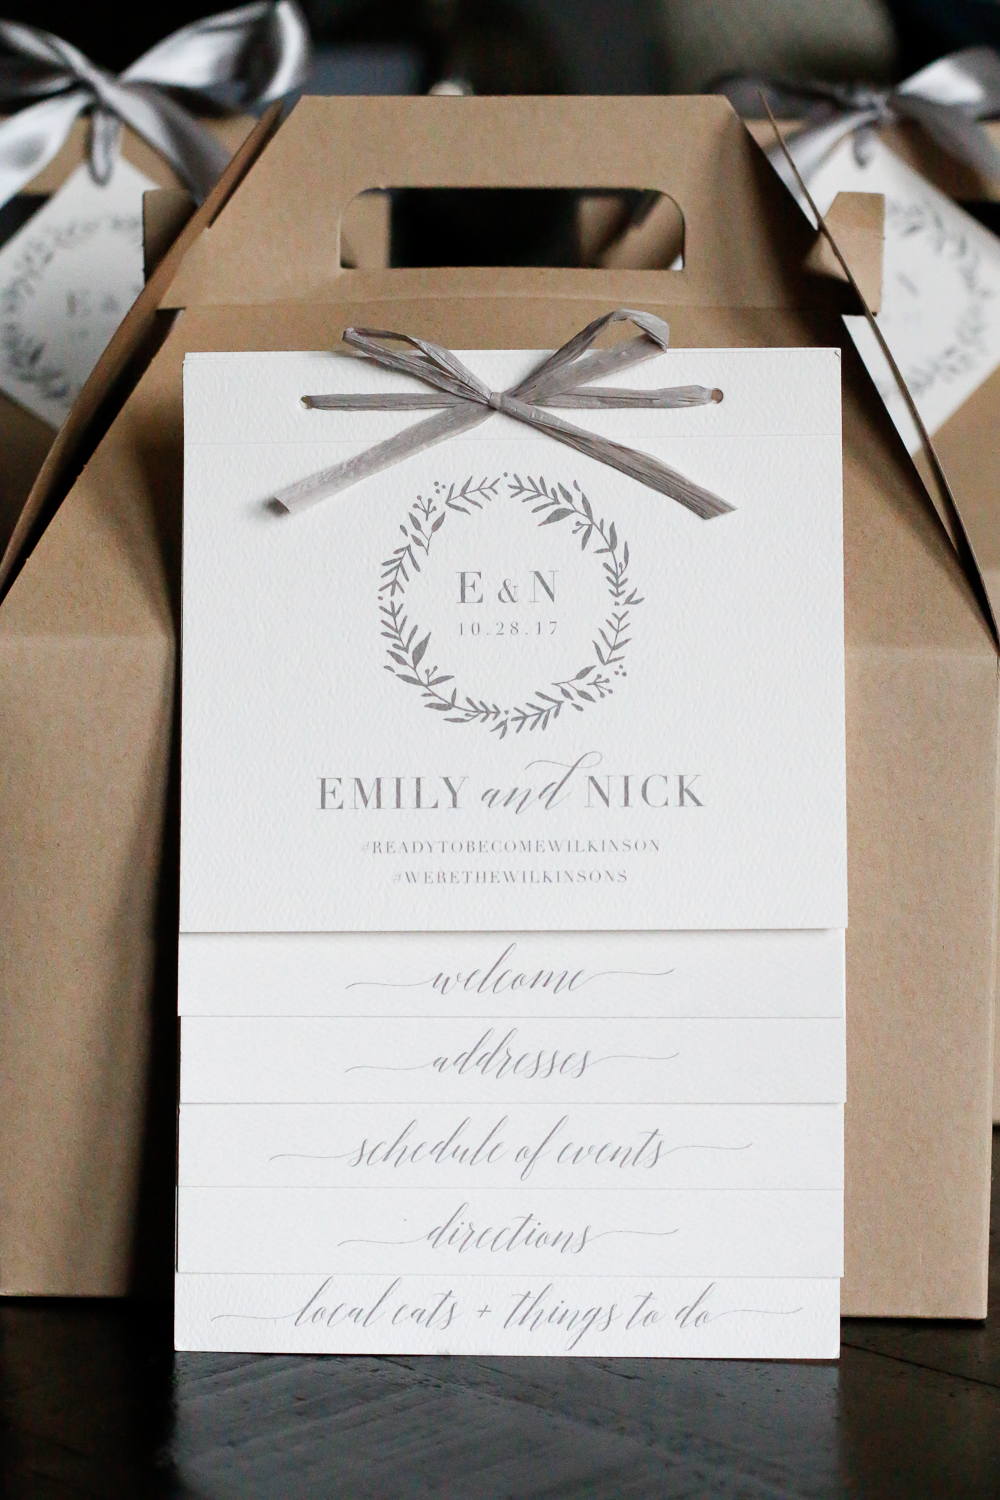 what-to-include-in-wedding-welcome-bags-26-1.jpg